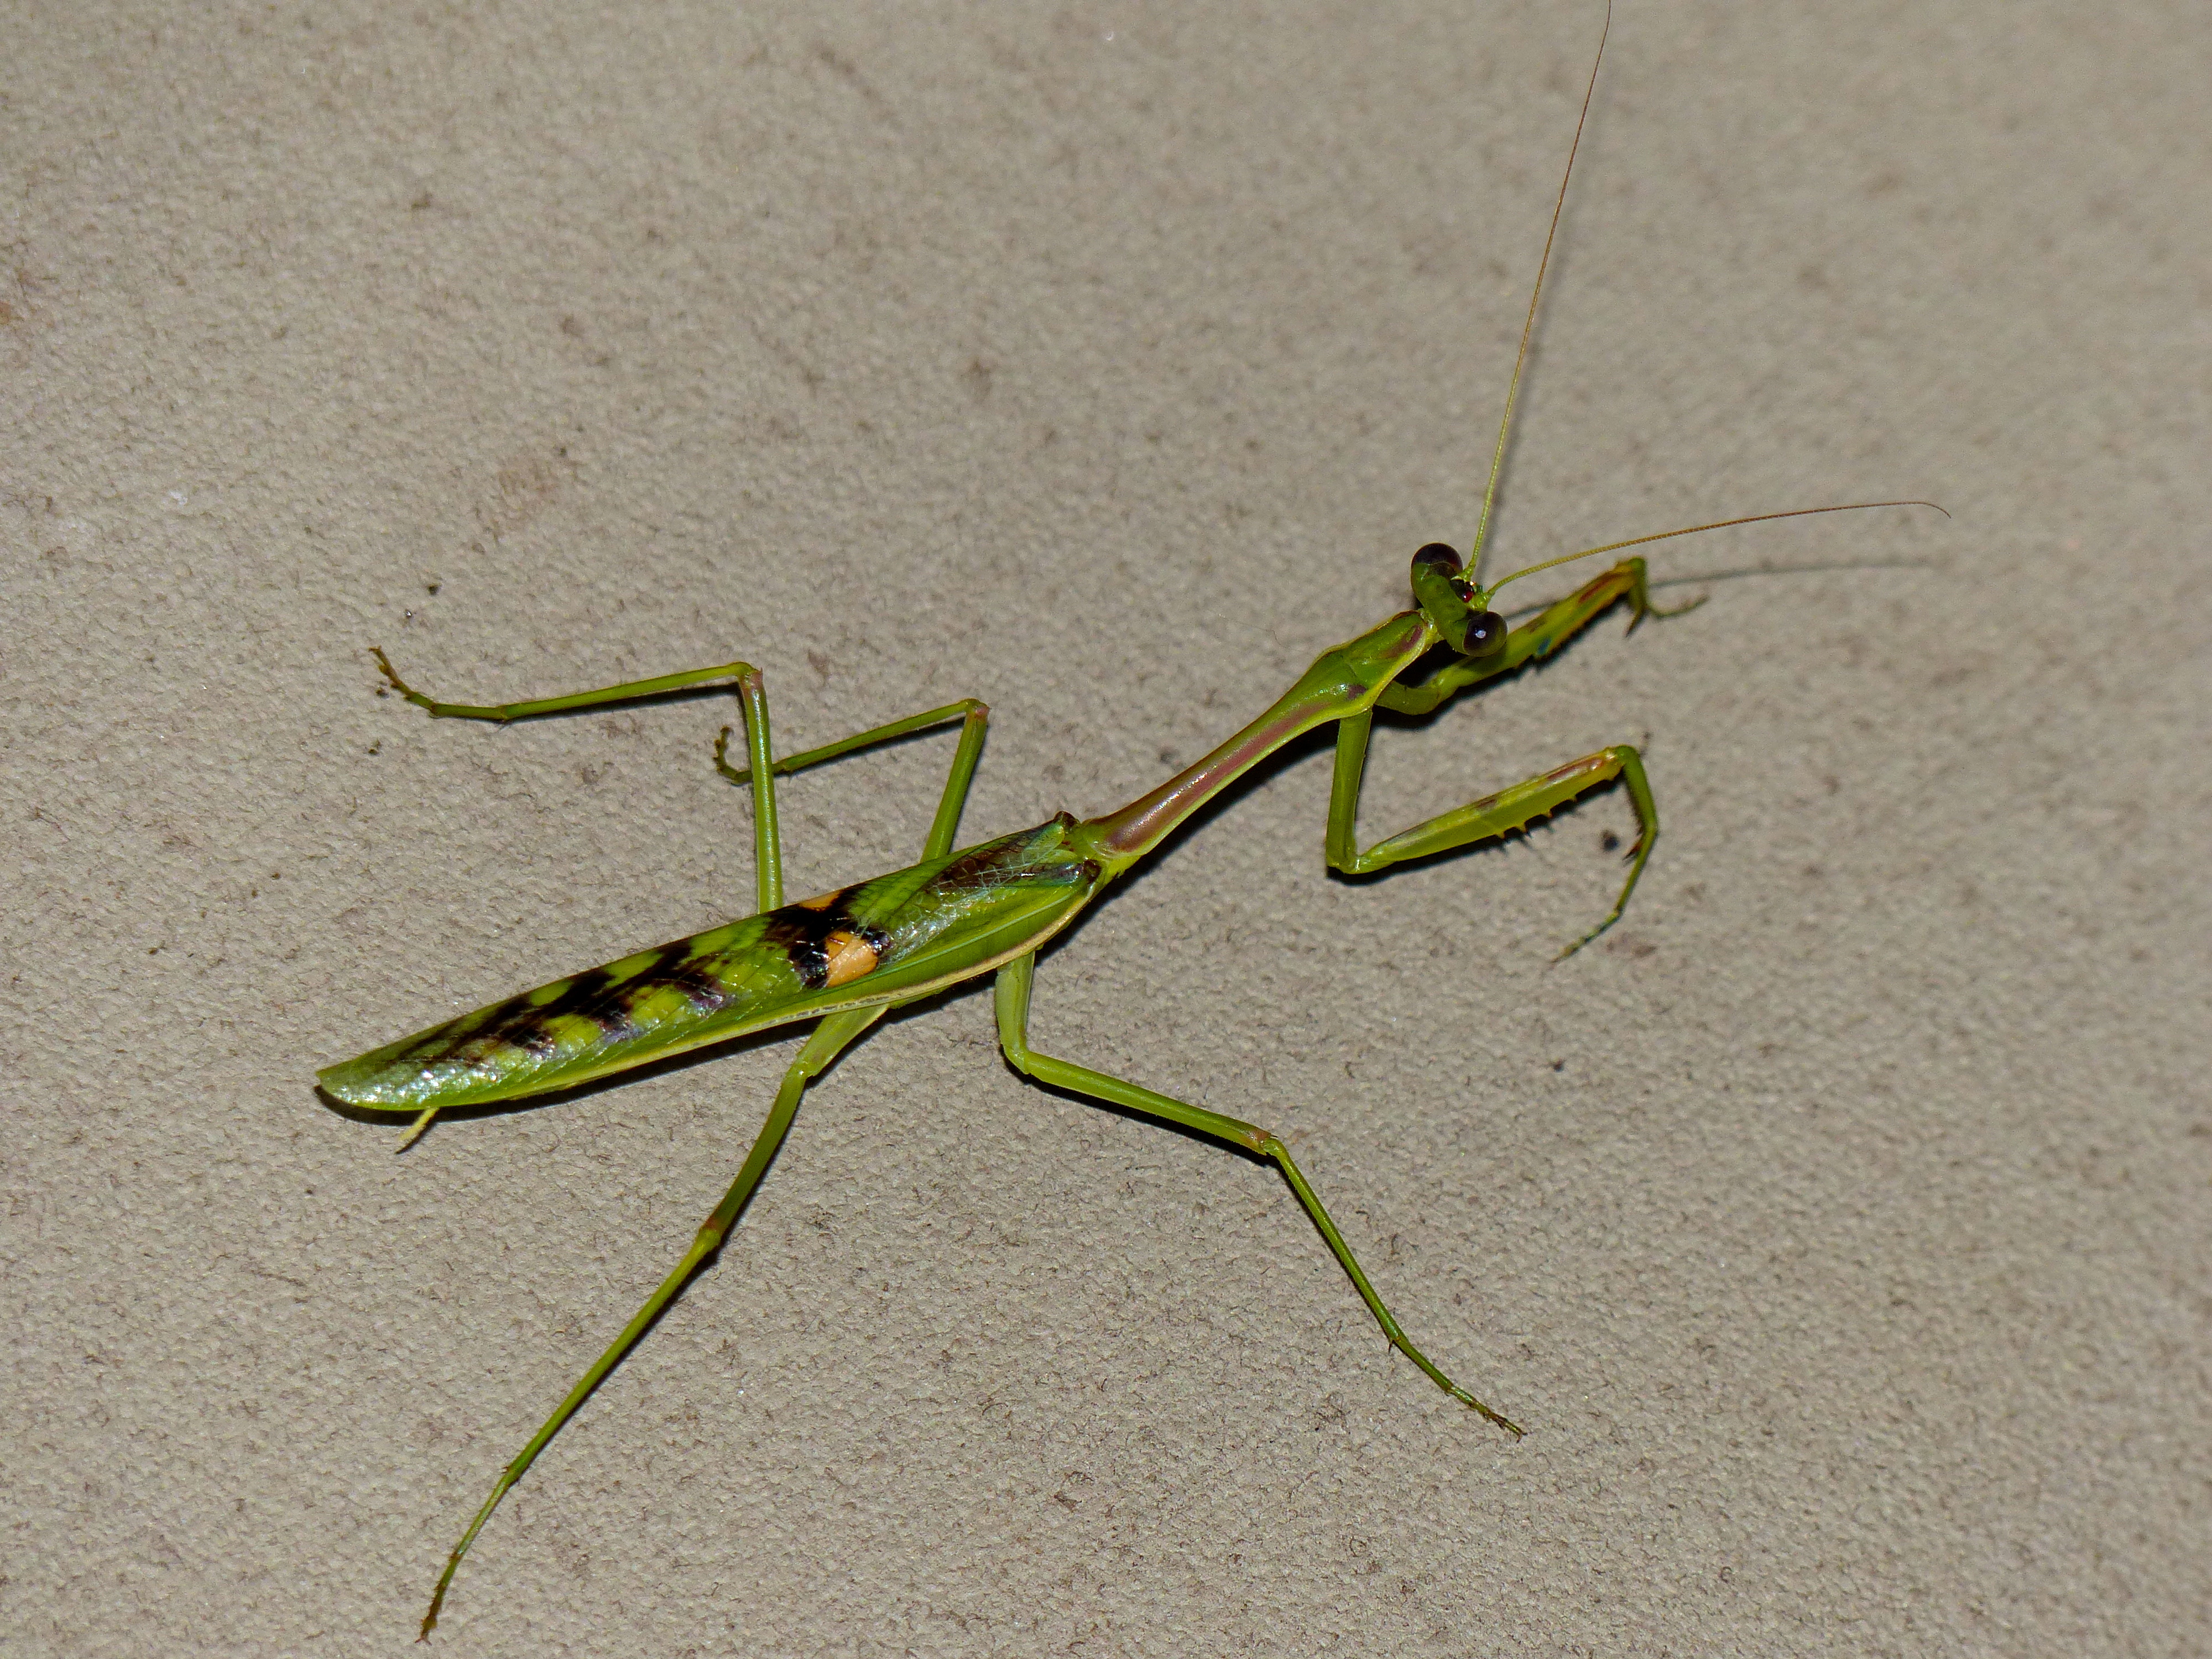 Image of zebra mantis